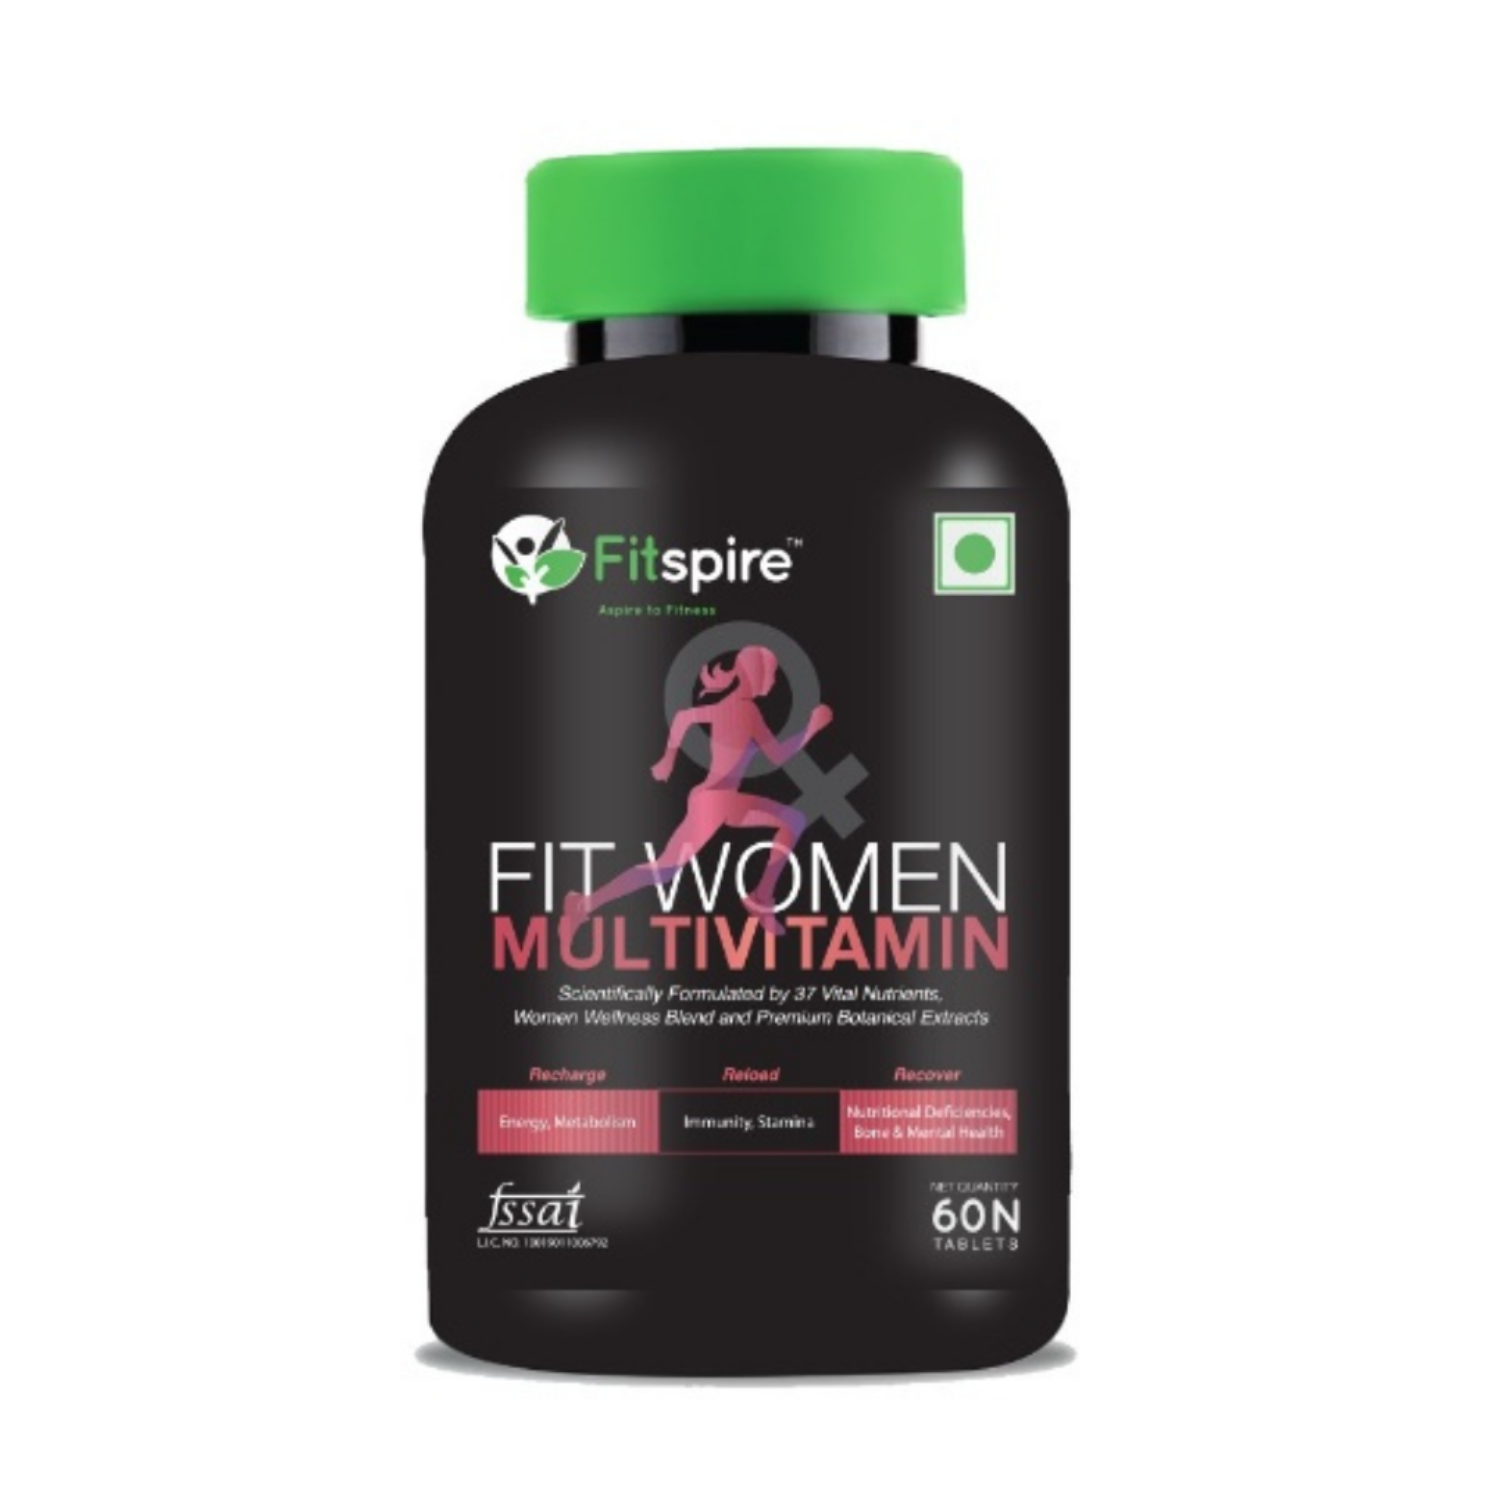 Fitspire Fit Women Multivitamin Tablets | Enriched with 37 Vital Nutrients